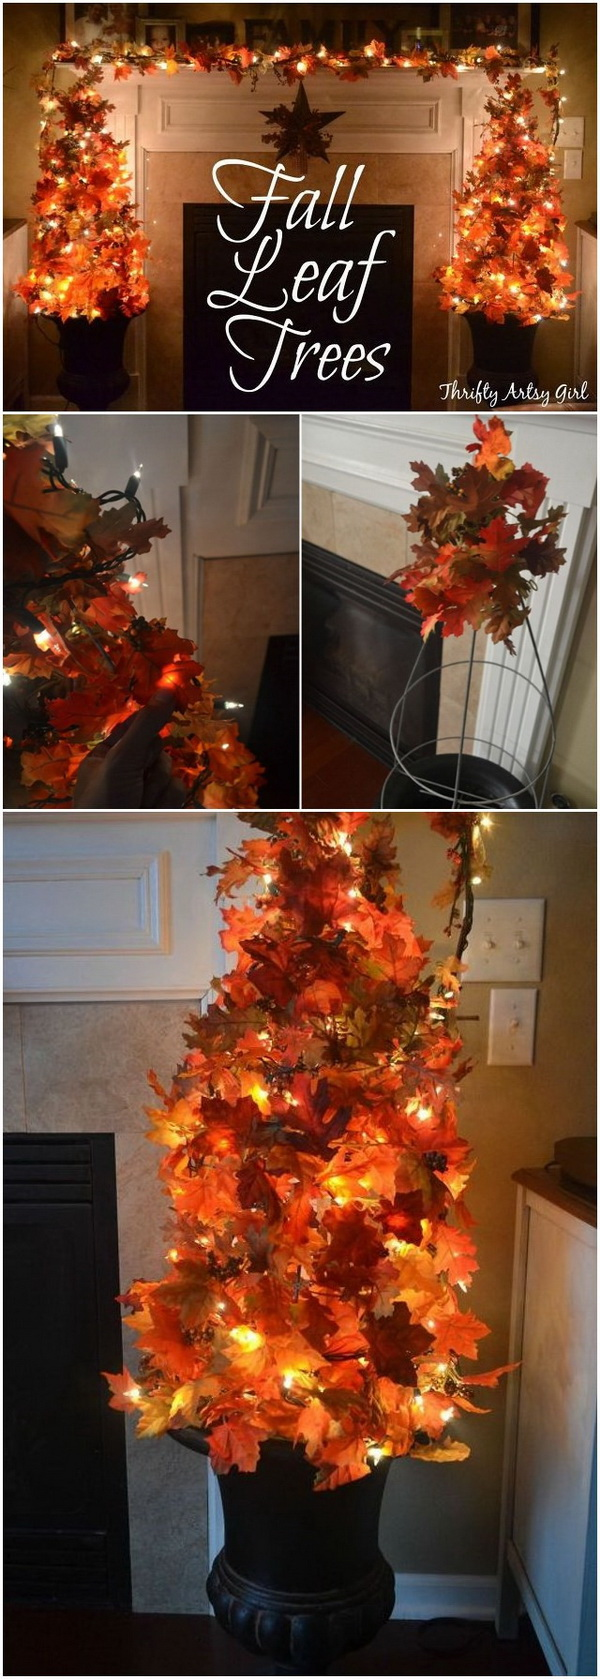 Uncategorized Fall Tree Decorations 50 diy fall crafts decoration ideas that are easy and leaves potted topiary tree